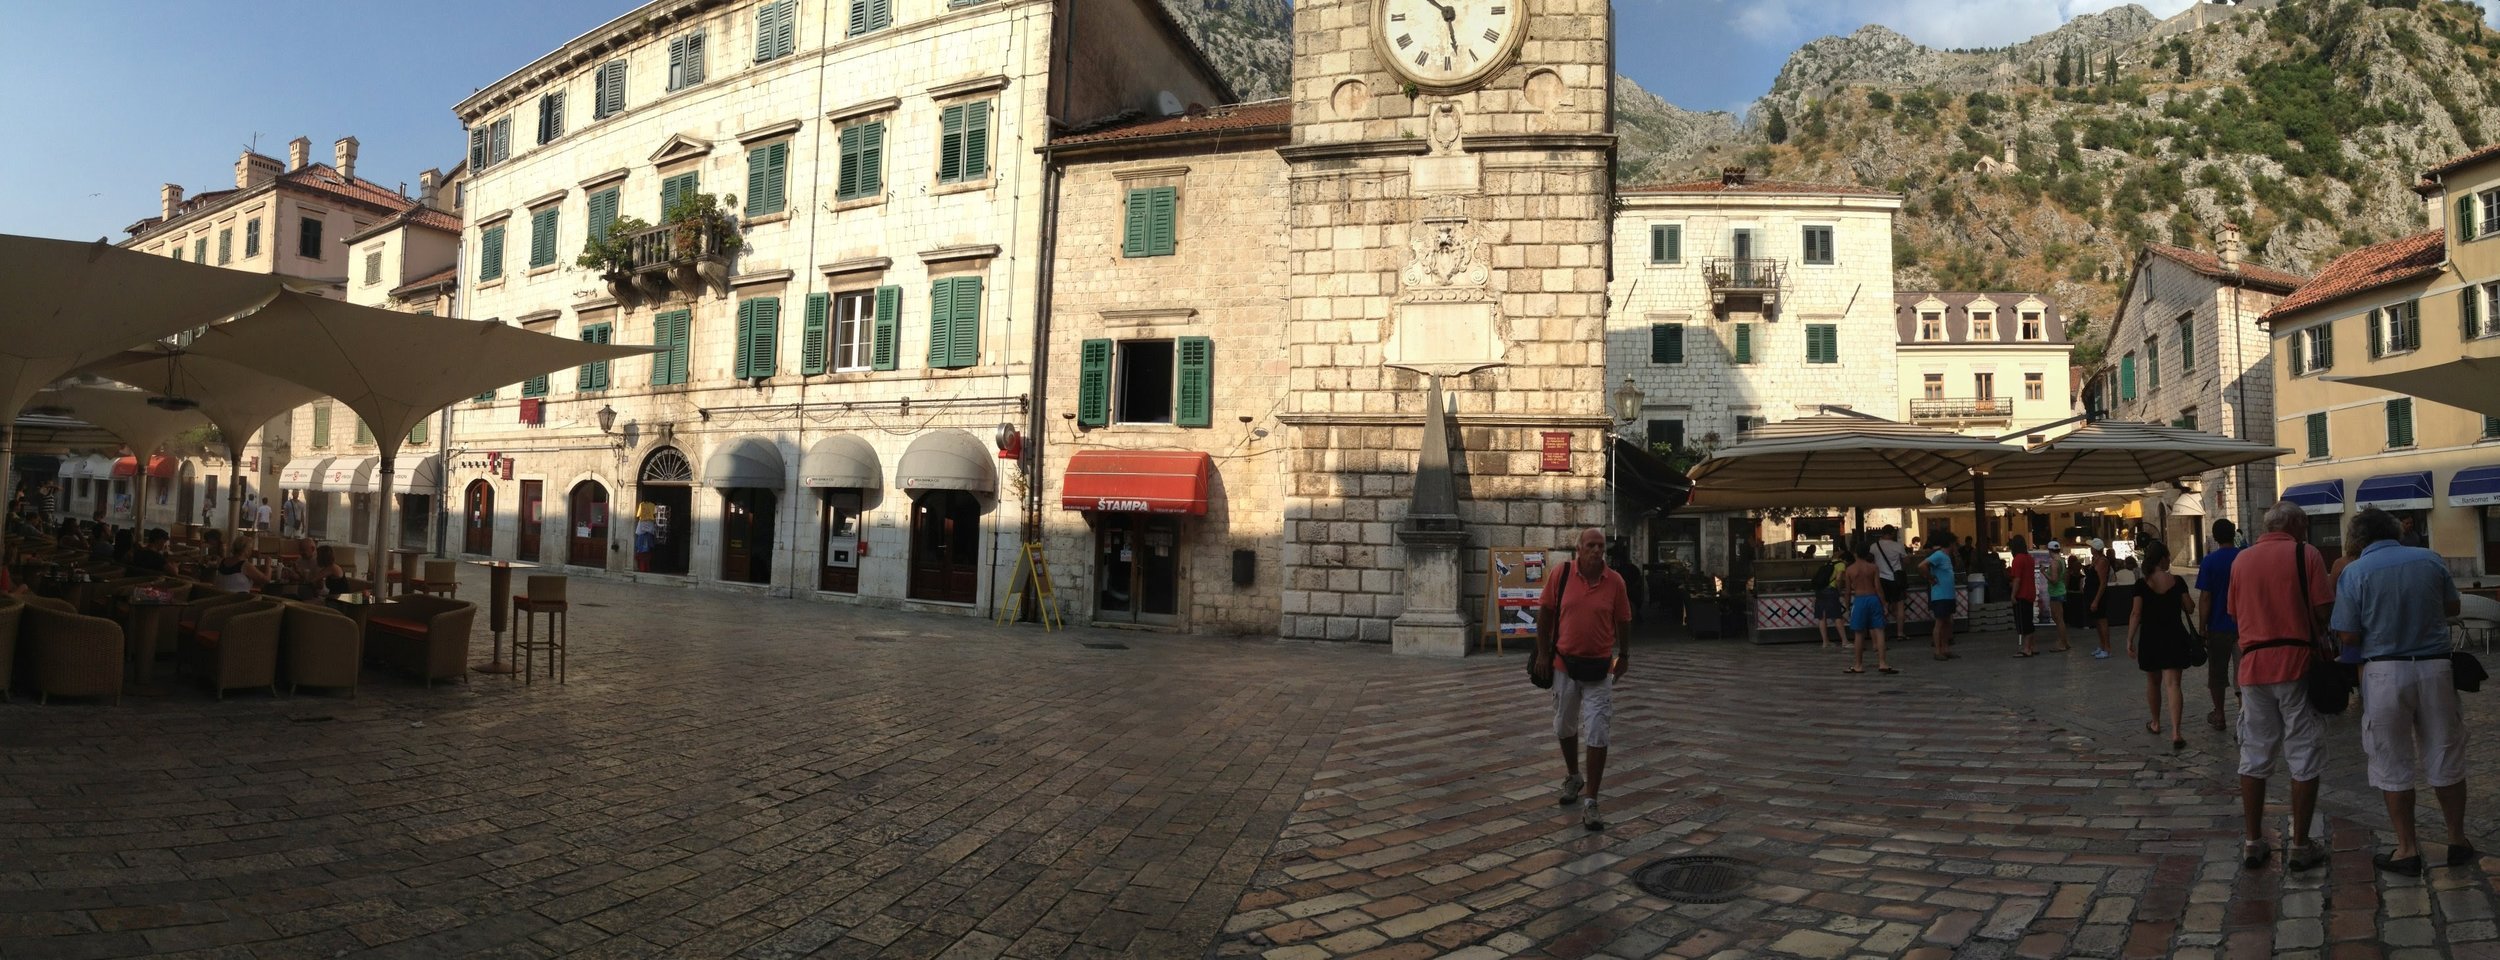 The walled town of Kotor